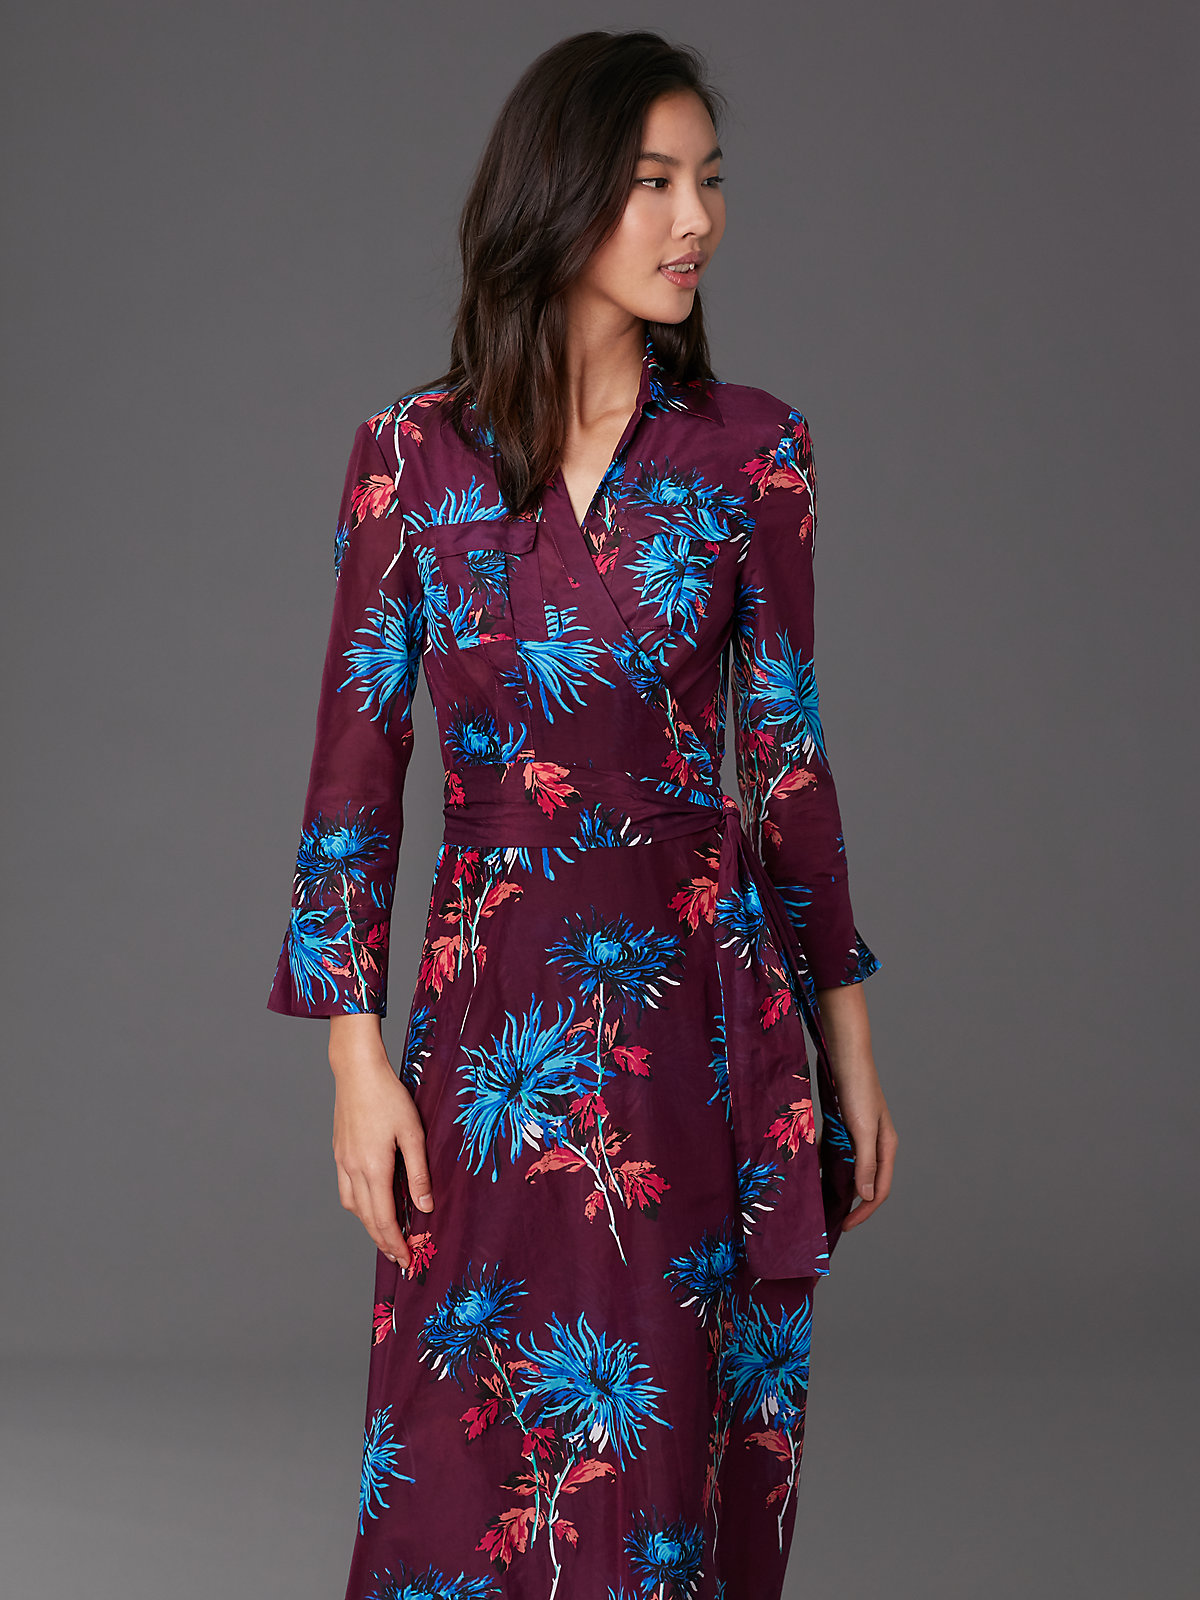 DVF Dress Currant 2